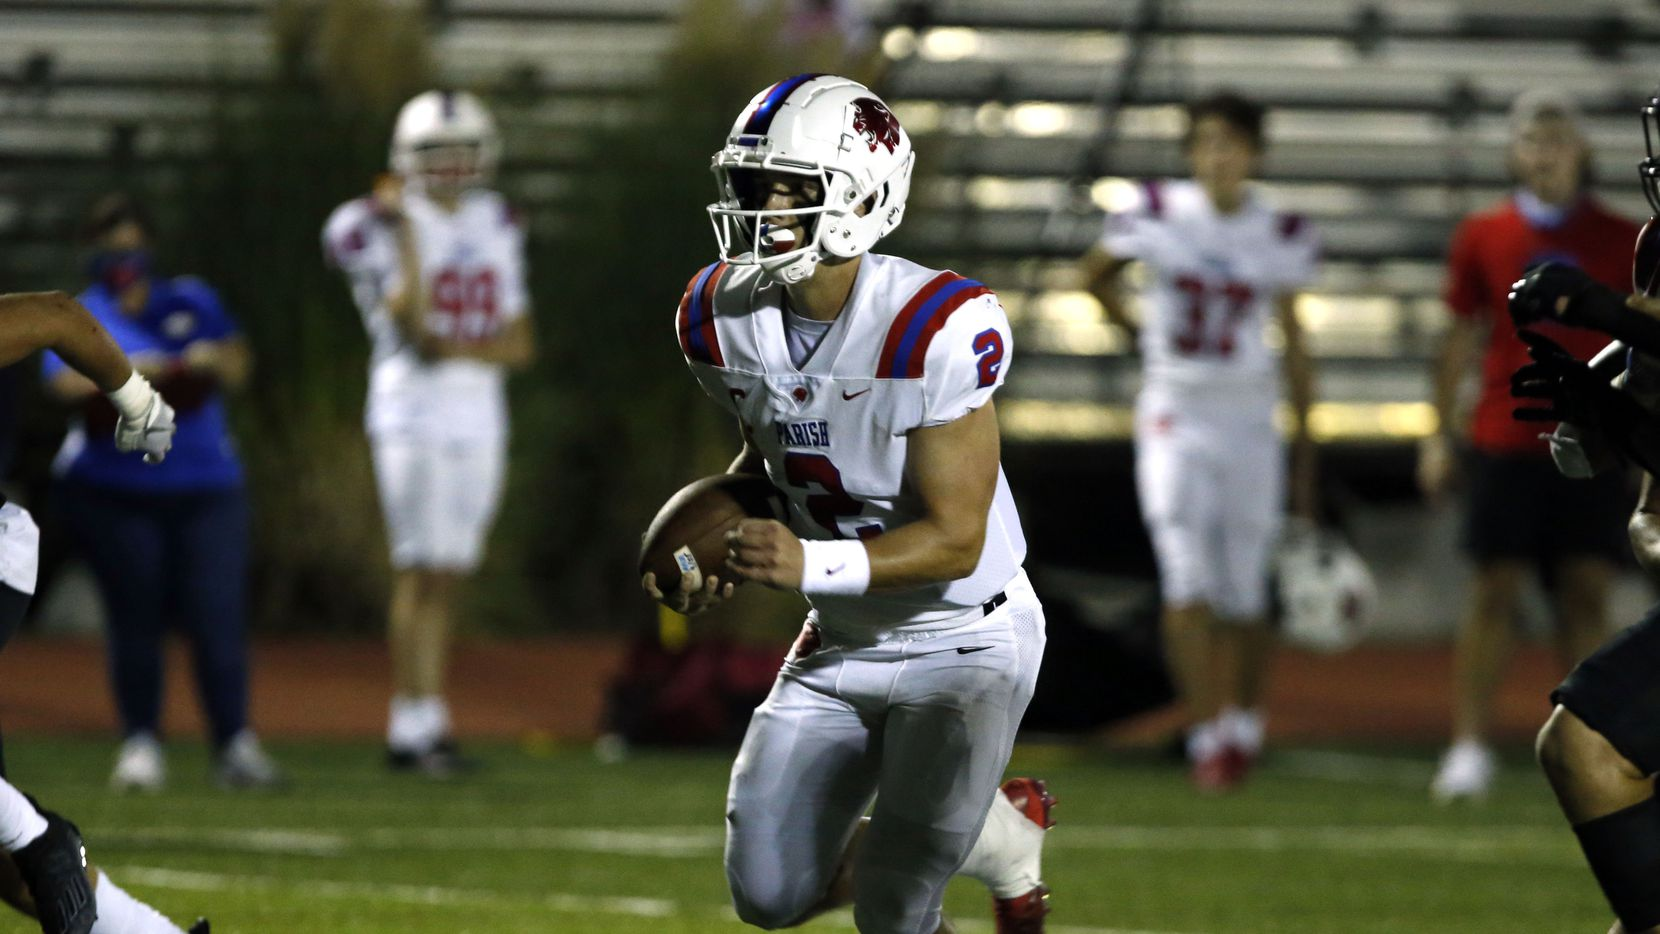 Parish Episcopal QB Preston Stone (2) finds an opening and advances for a touchdown during the first half of high school football game against Bishop Lynch at Roffino Stadium in Dallas on Friday, September 25, 2020.